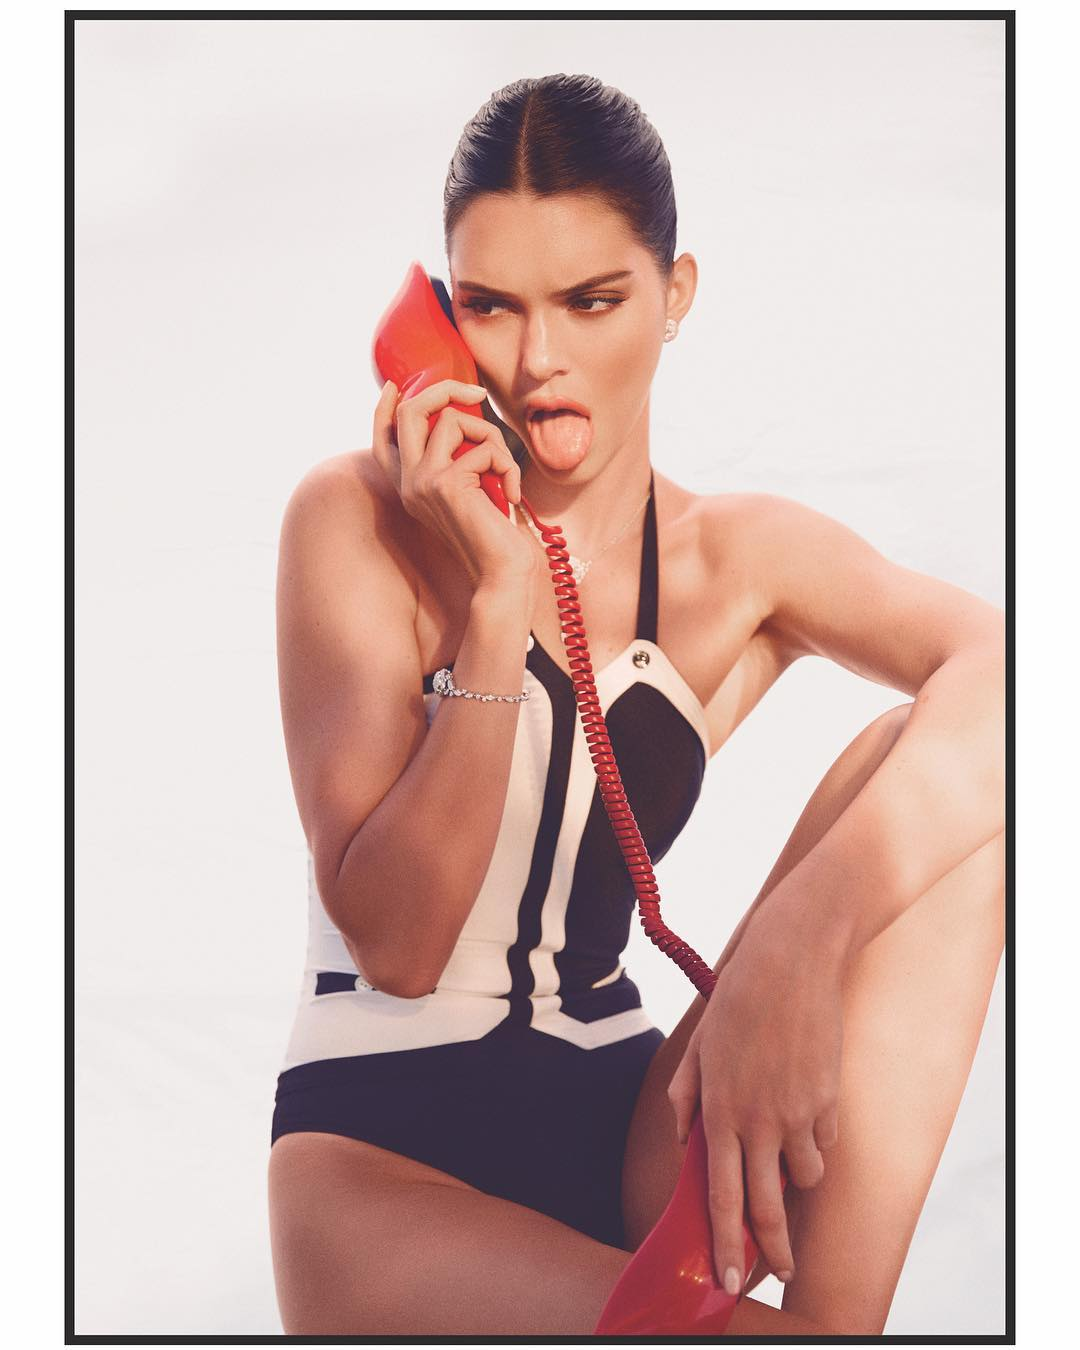 Kendall Jenner With Mid Part Sleek Back Hair In CHAOS SIXTY NINE Magazine 2021